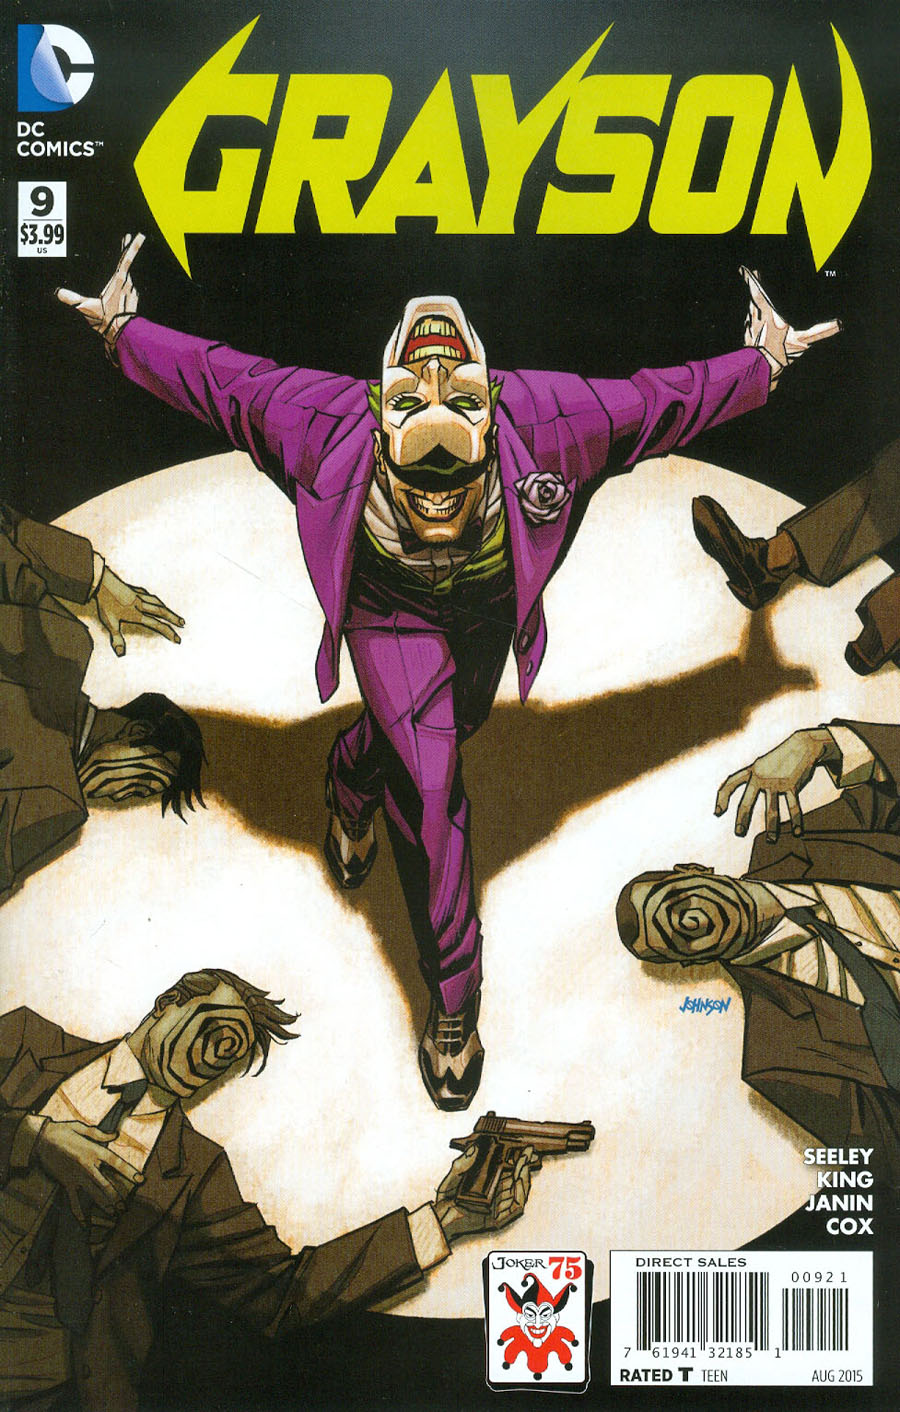 Grayson #9 Cover B Variant Dave Johnson The Joker 75th Anniversary Cover